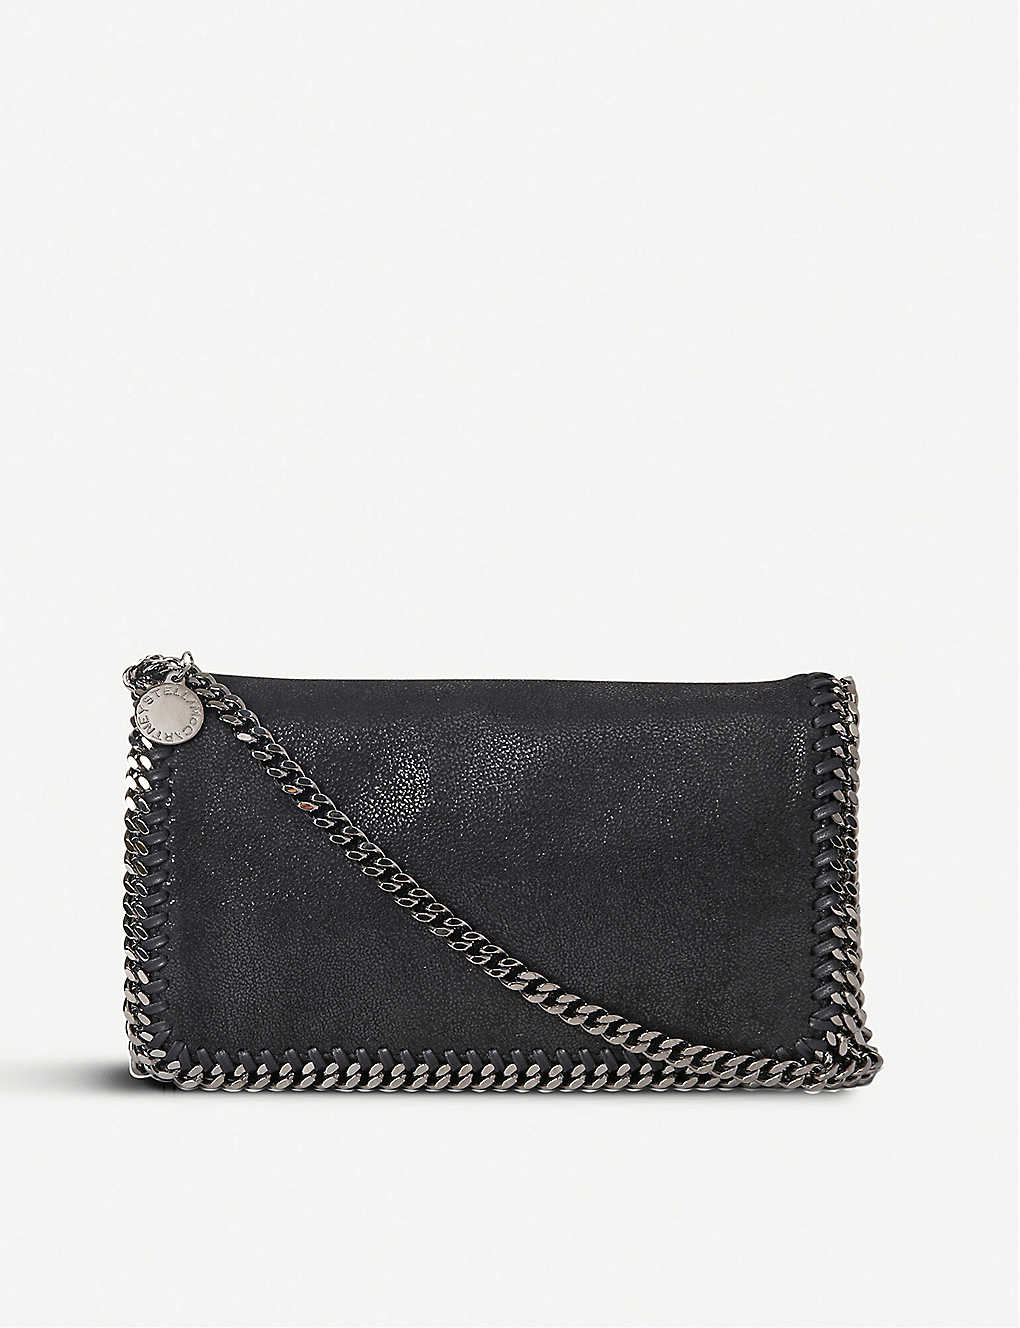 25c4287185f4 STELLA MCCARTNEY - Falabella cross-body bag | Selfridges.com